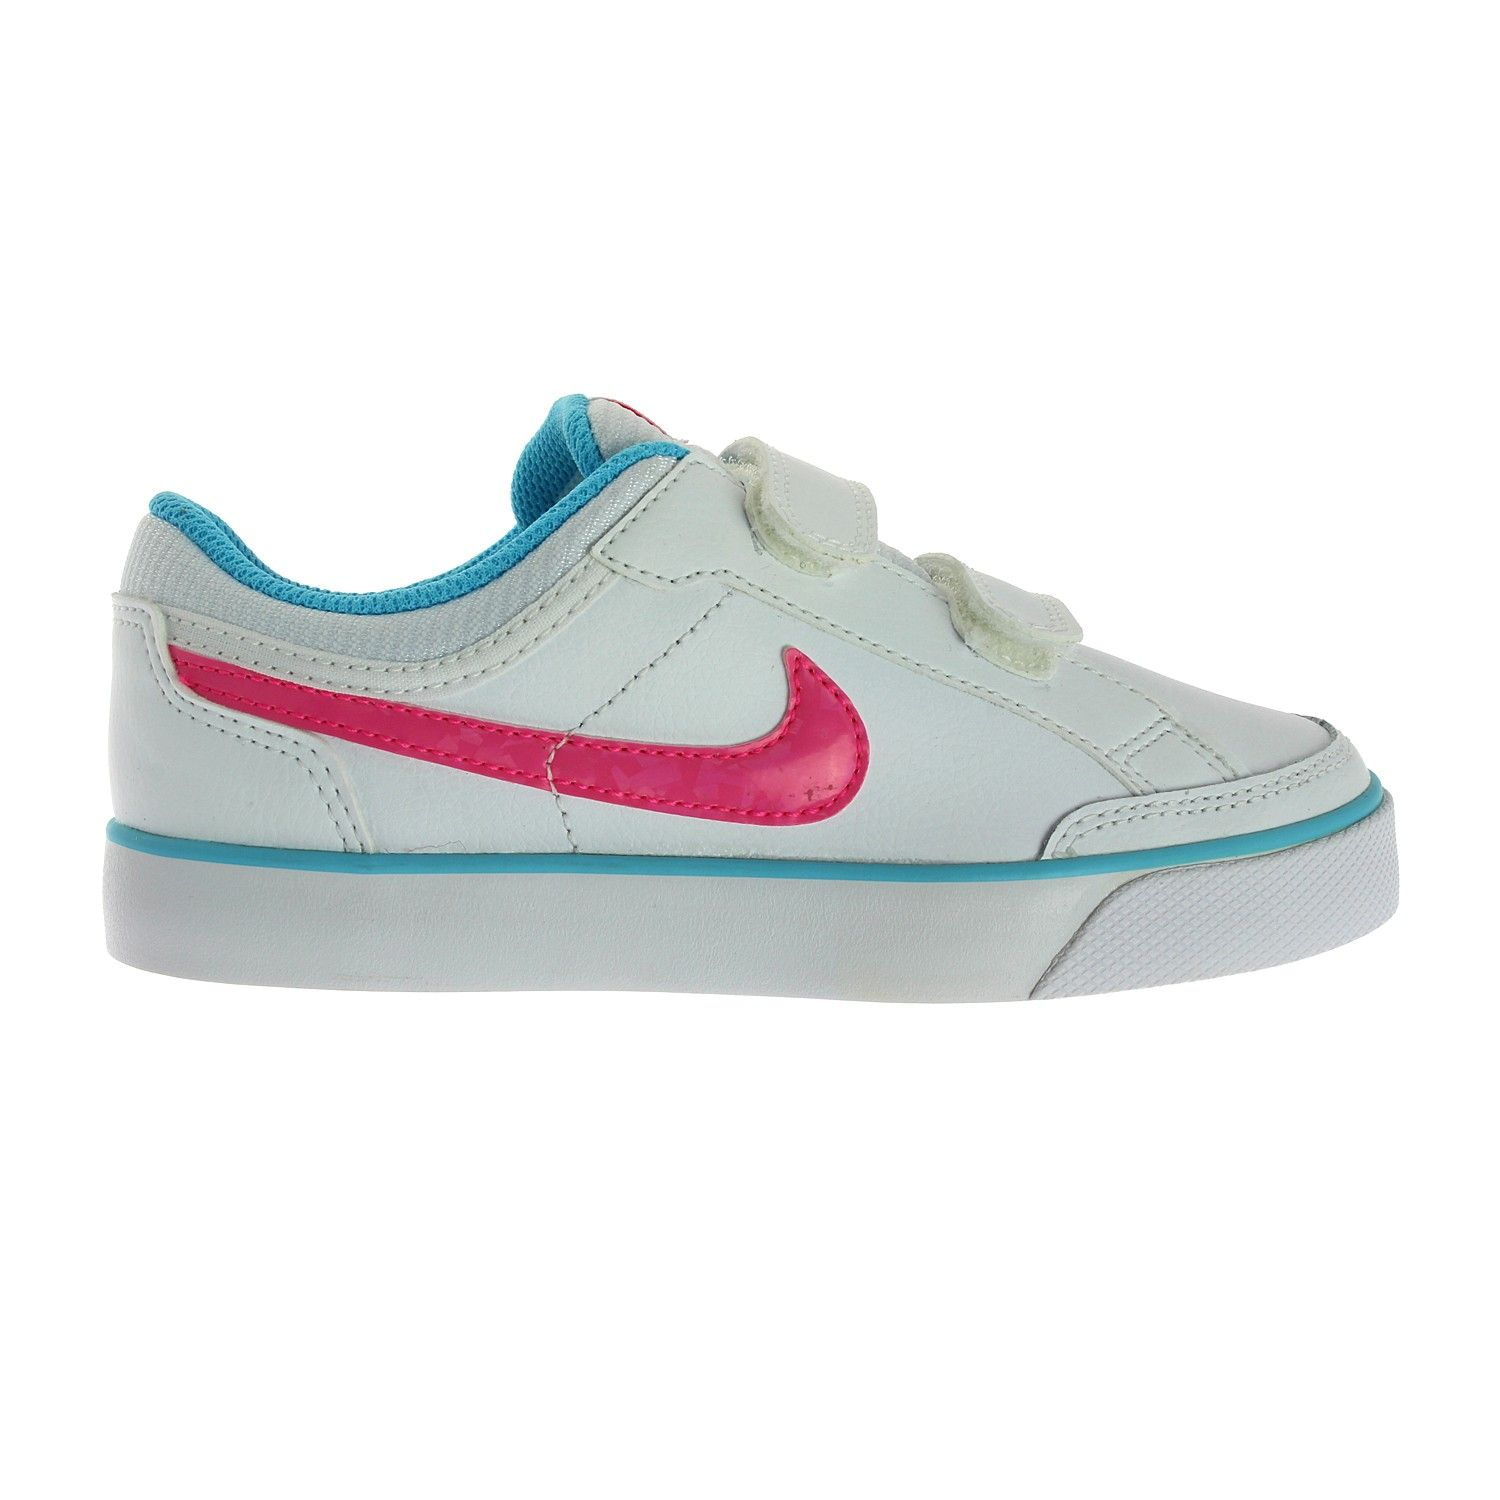 huge selection of 9a91d 6d770 Nike Capri 3 Leather (579952-104)